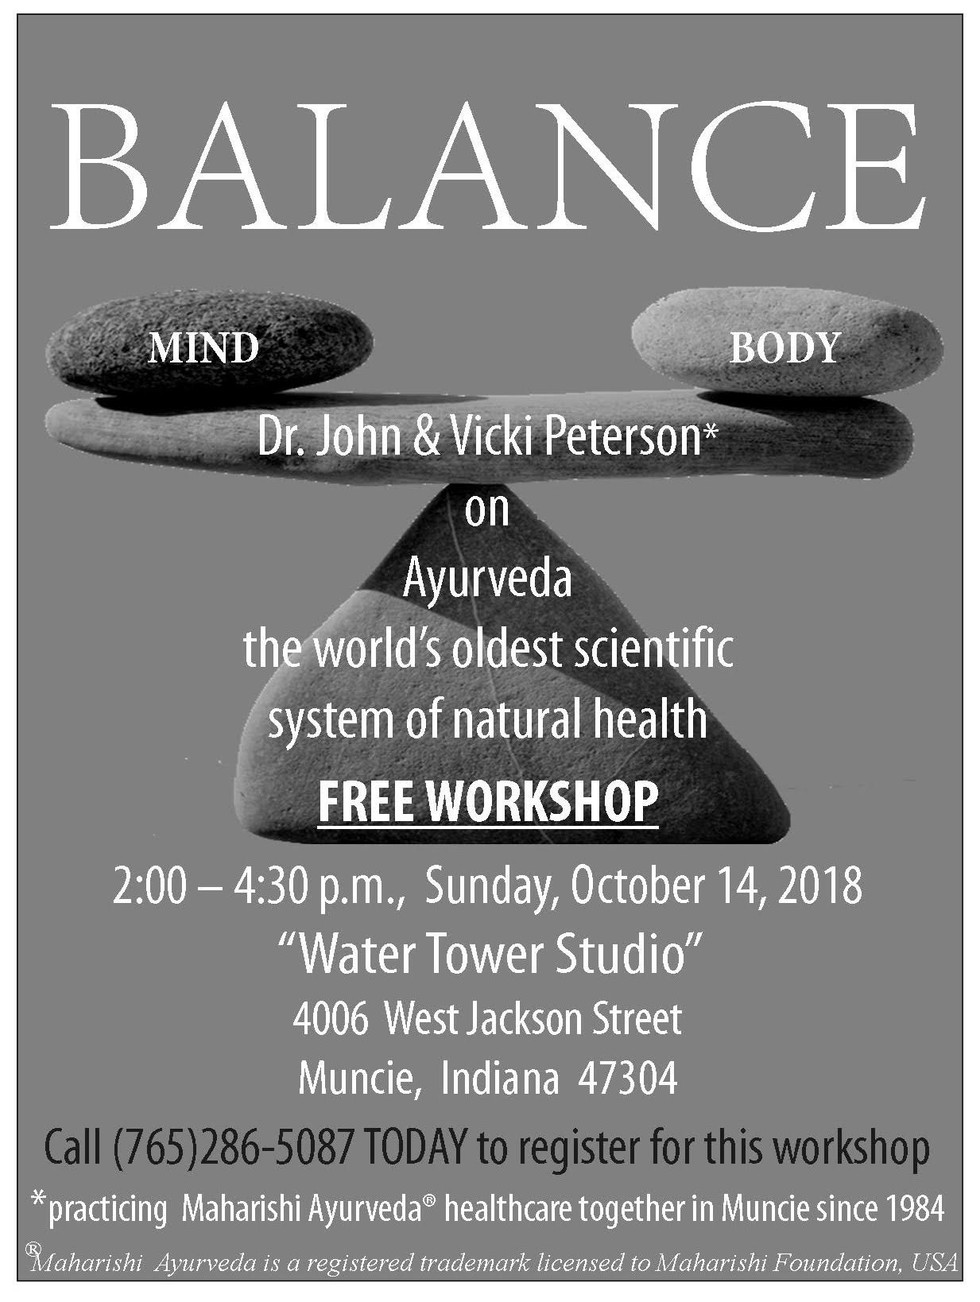 Ayurveda workshop Oct. 14